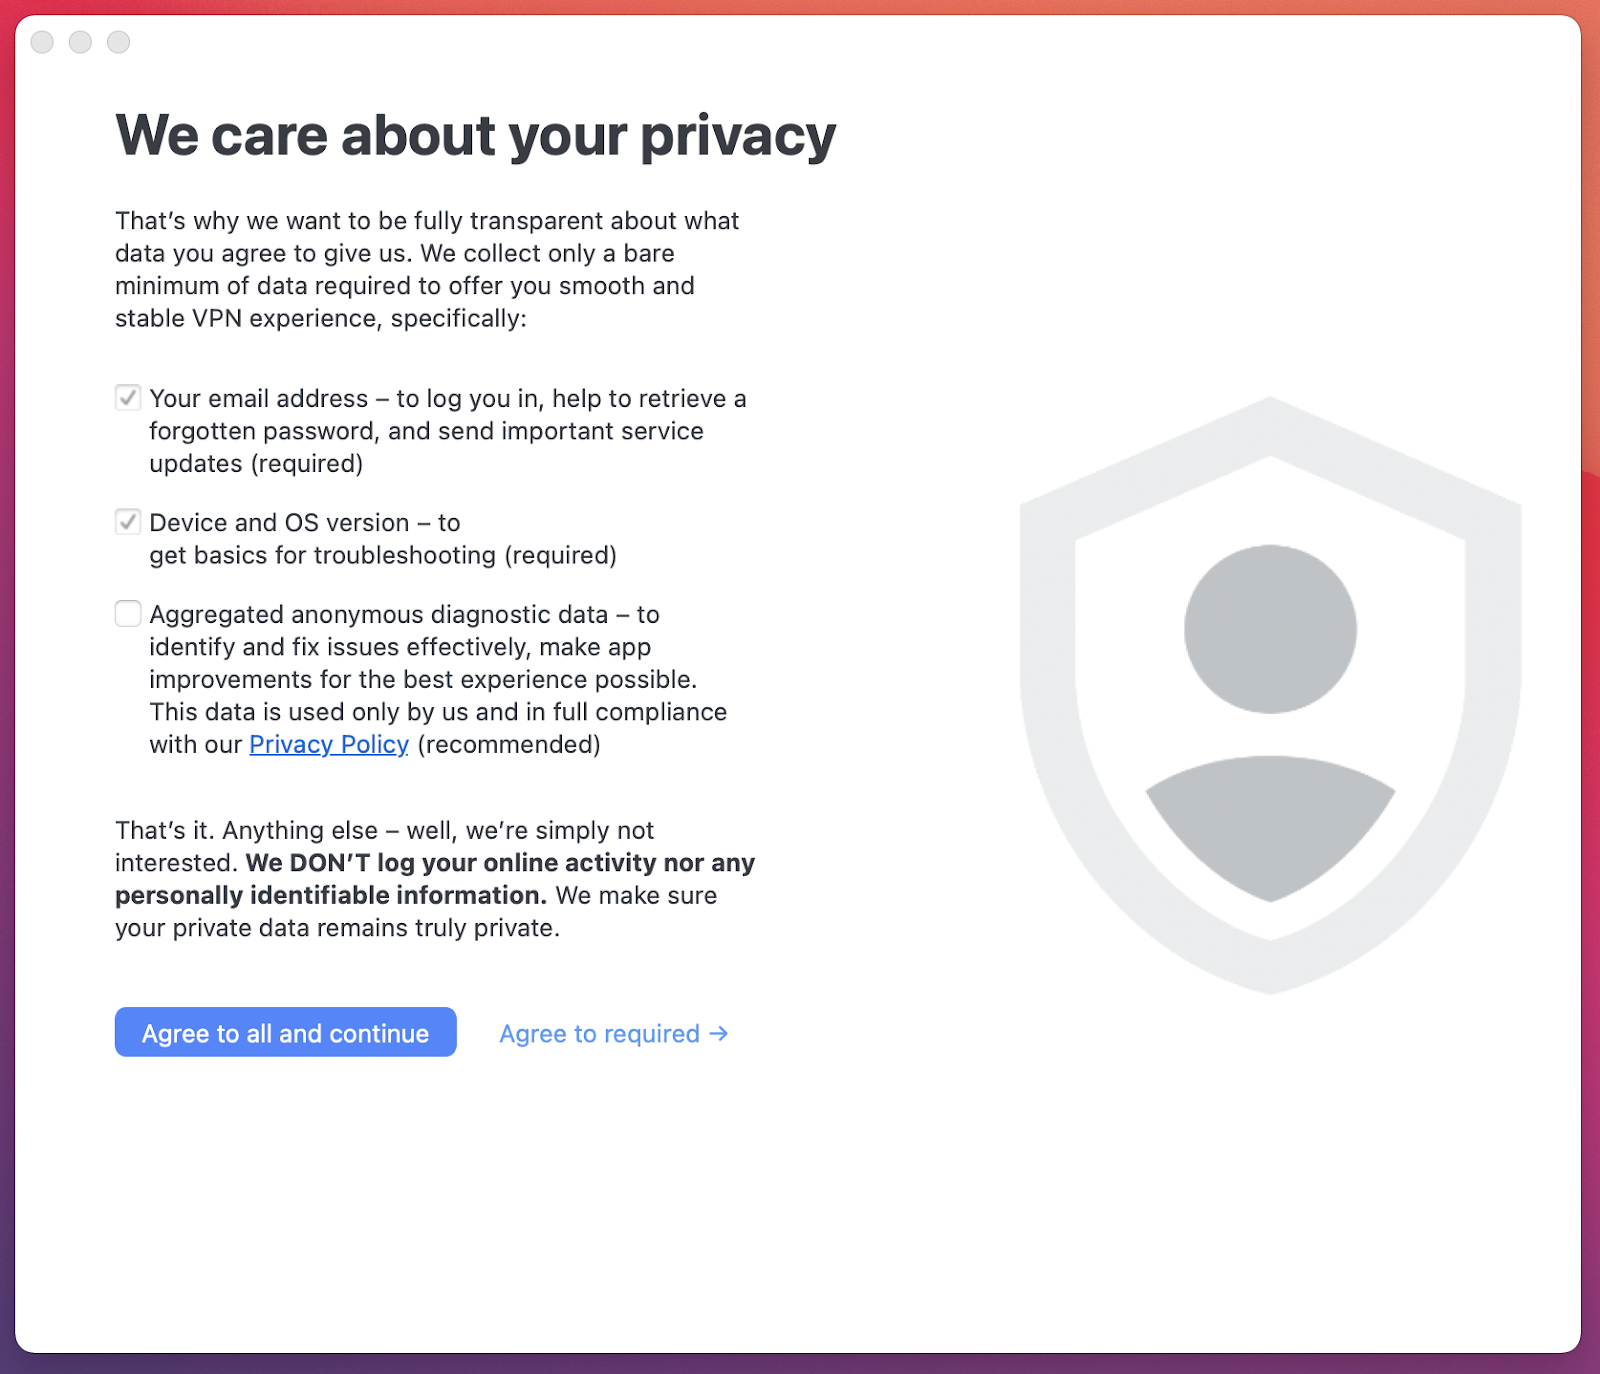 NordVPN privacy policy agreement